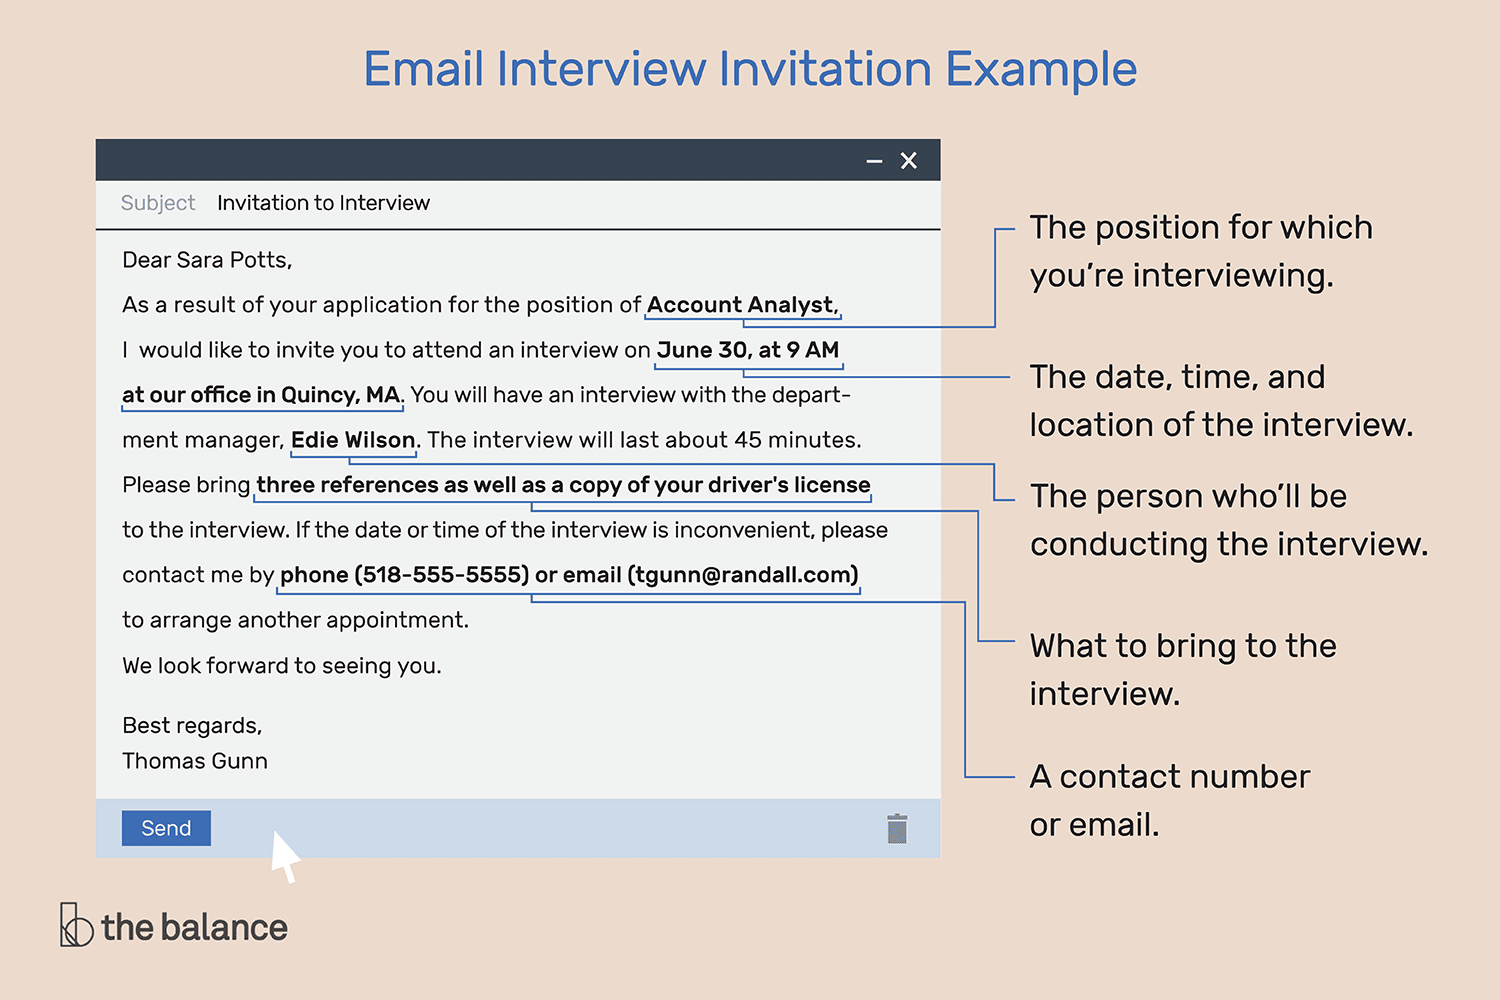 Email Interview Invitation Example What An Email Invitation To An Interview Should Include Book Review Help also Secondary School English Essay  Healthy Eating Essays